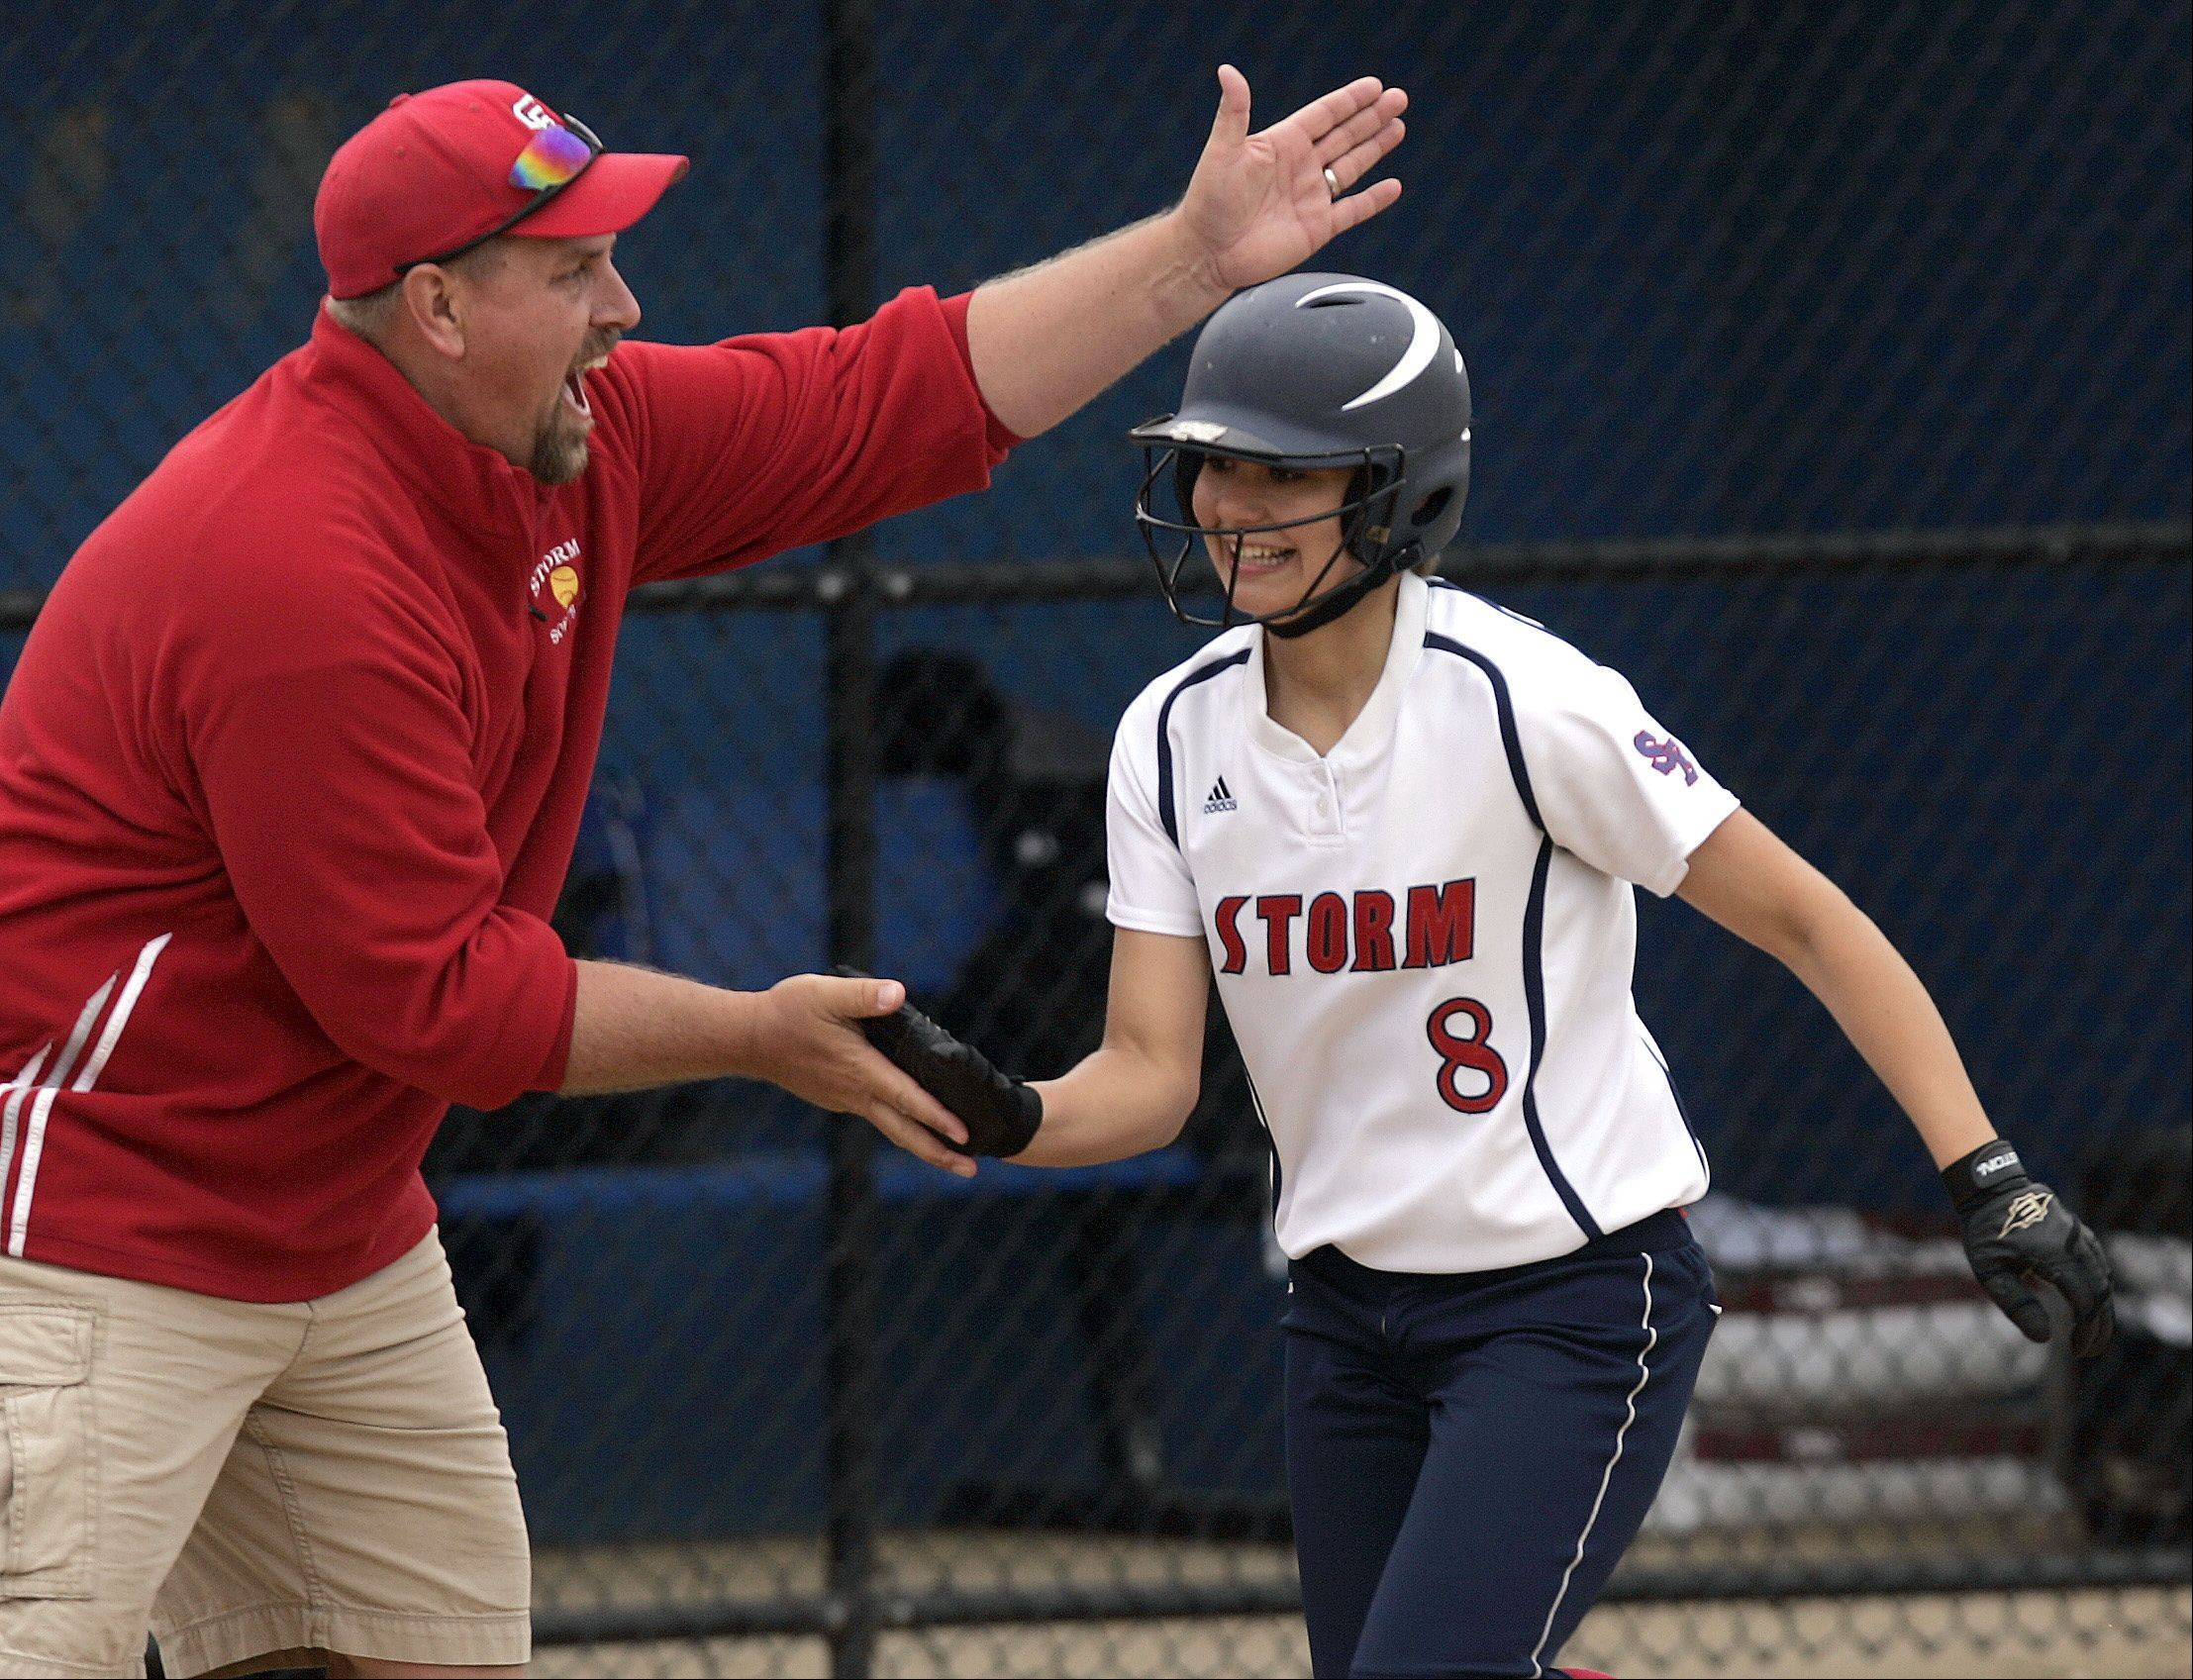 South Elgin's Victoria Watt is greeted by head coach Jason Schaal at third base after belting a home run as the first batter in the game during the Class 4A regional softball final at St. Charles North Saturday.